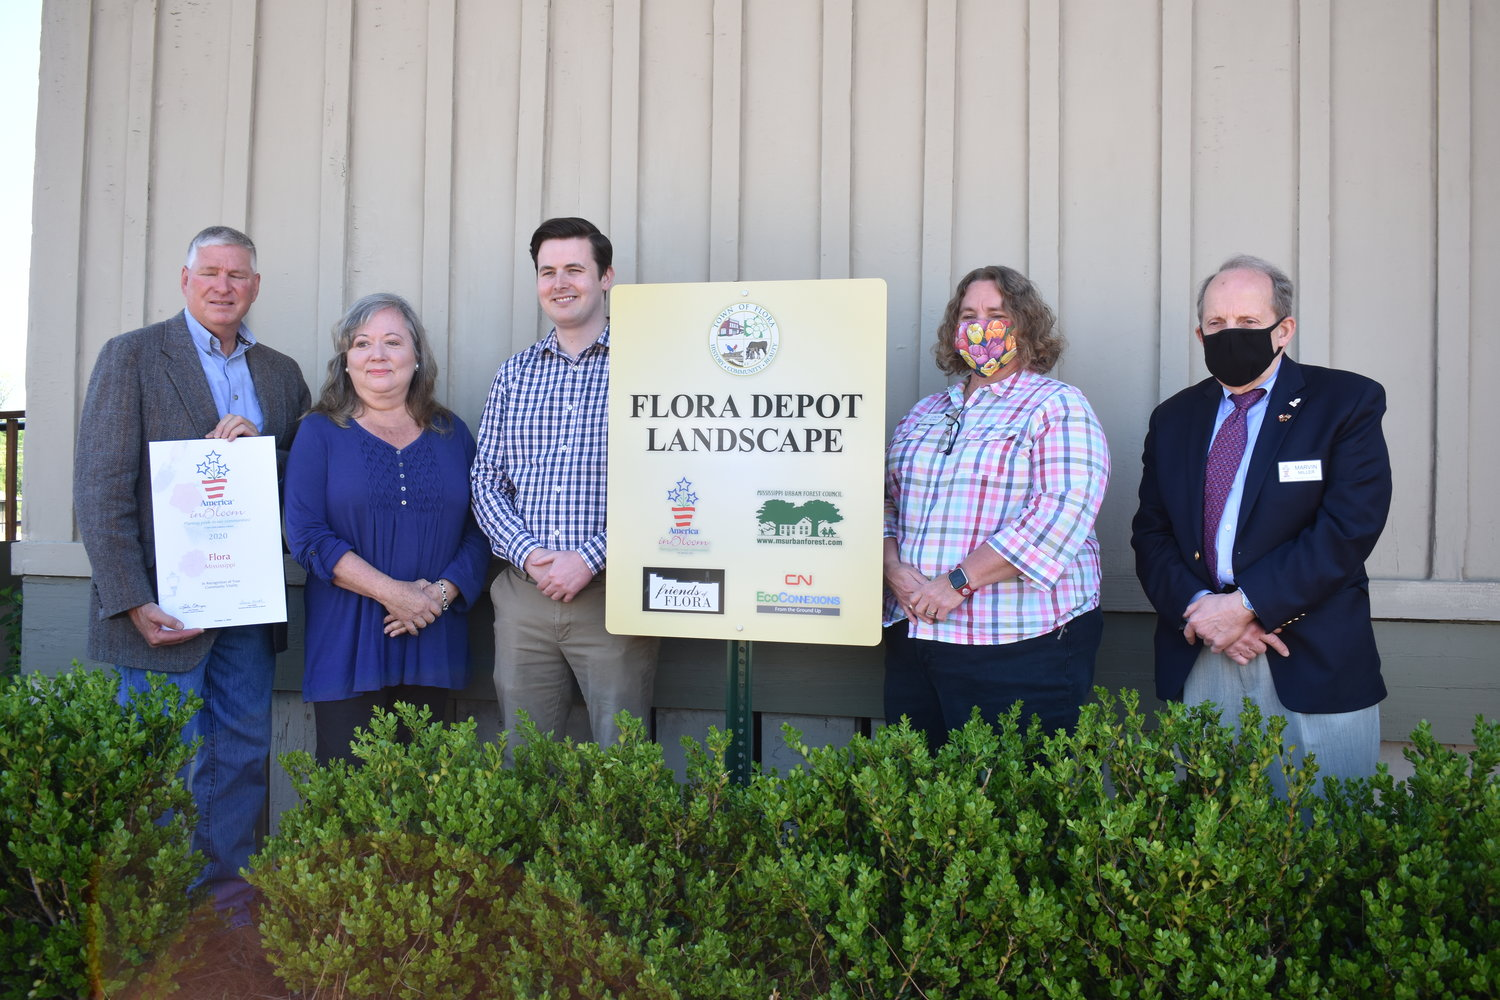 Pictured, left to right, are Mayor Leslie Childress, Donna Yowell, Executive Director Mississippi Urban Forest Council; Nathan Thomas, President of Friends Of Flora; Laura Kunkle, America In Bloom; Marvin Miller, Canadian National Railway.